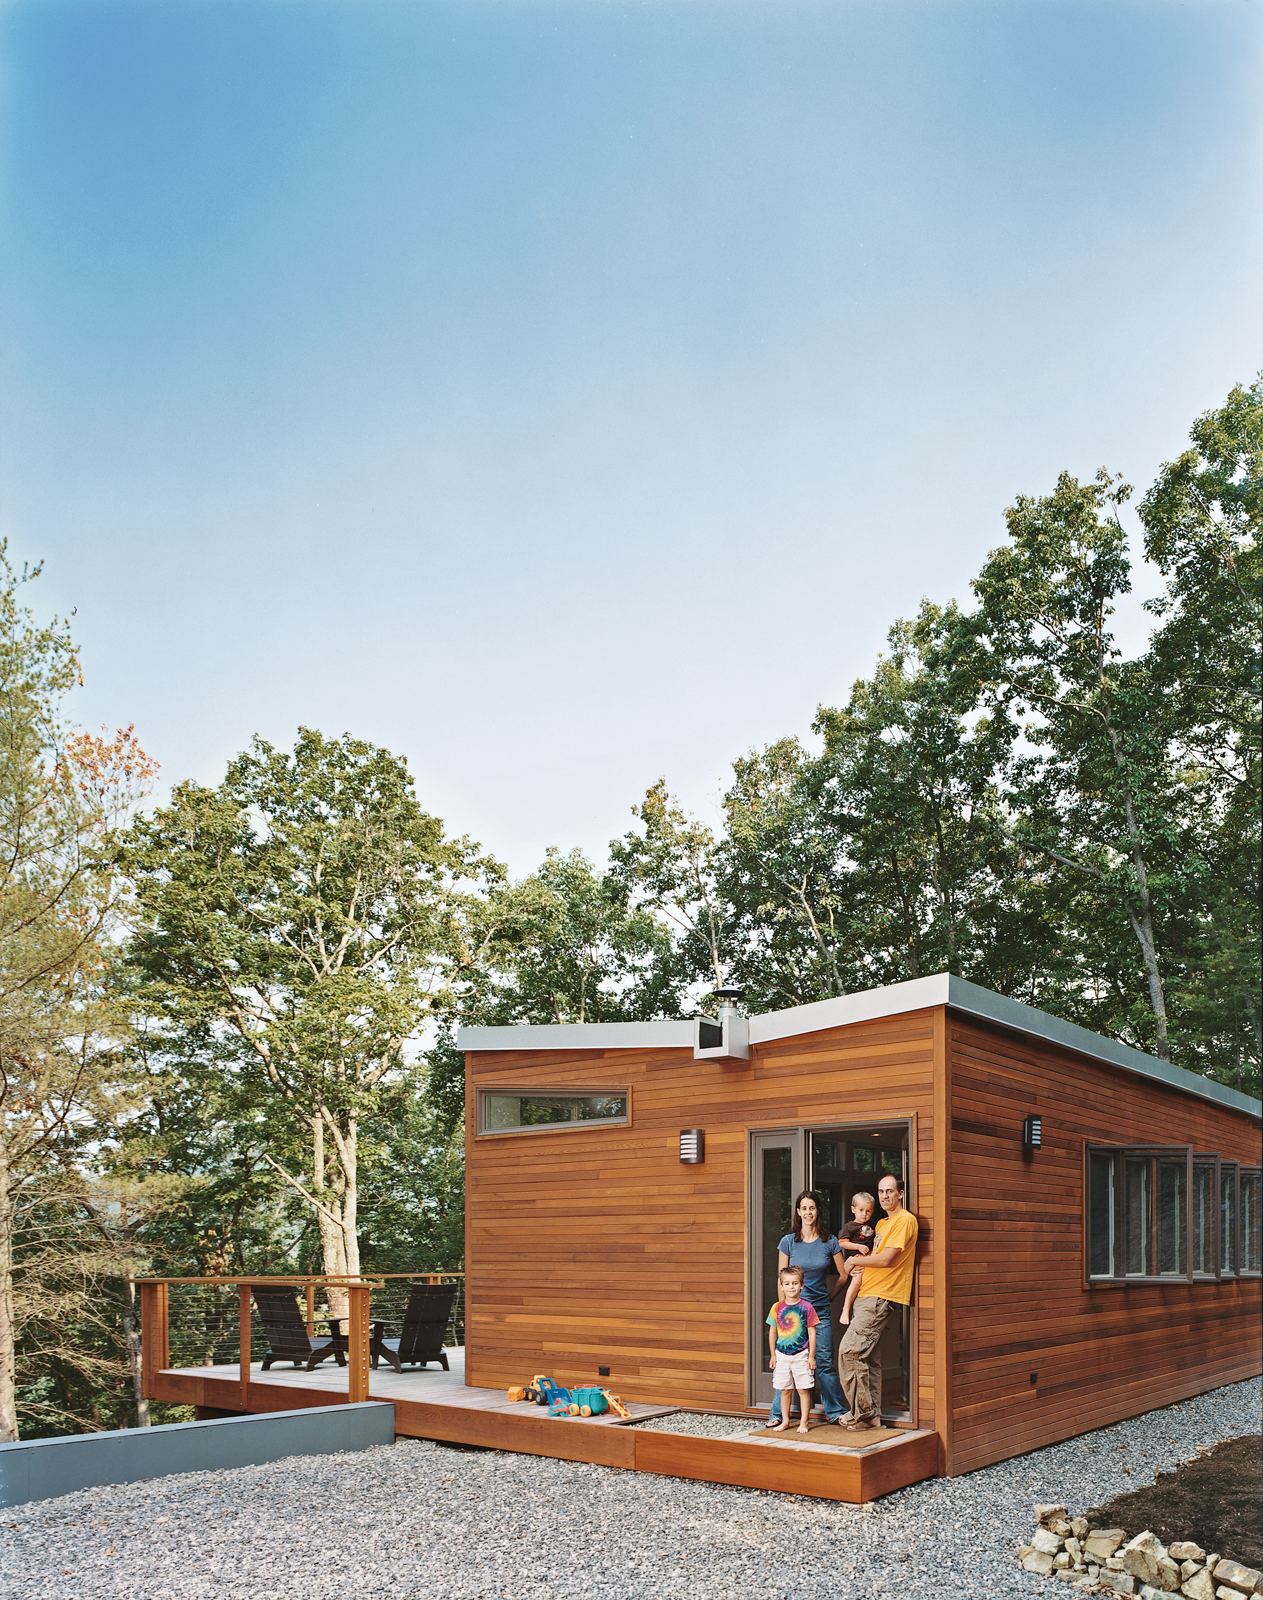 The residents worked with architecture firm Resolution: 4 Architecture on the specs for their prefab cabin, and then commissioned Simplex to assemble it on their factory floor and drive it out to their remote Virginia location.